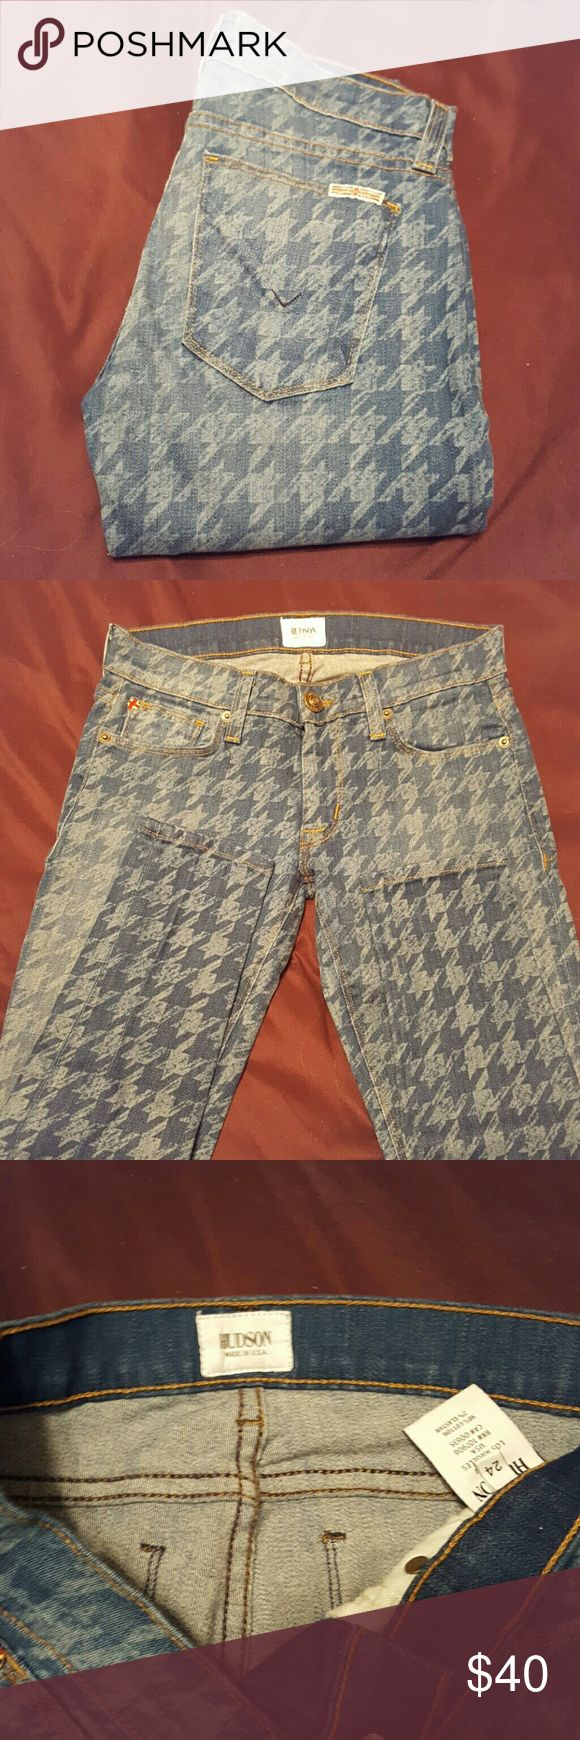 """Hudson Skinnies Excellent condition. Made in Los Angeles  Krista Super Skinny style W407DCO Cut 5634 FA 98% Cotton  2% Elastan   Flat Unstretched Measurements  Waist 13"""" Rise 7"""" Inseam 29"""" Hudson Jeans Jeans Skinny"""